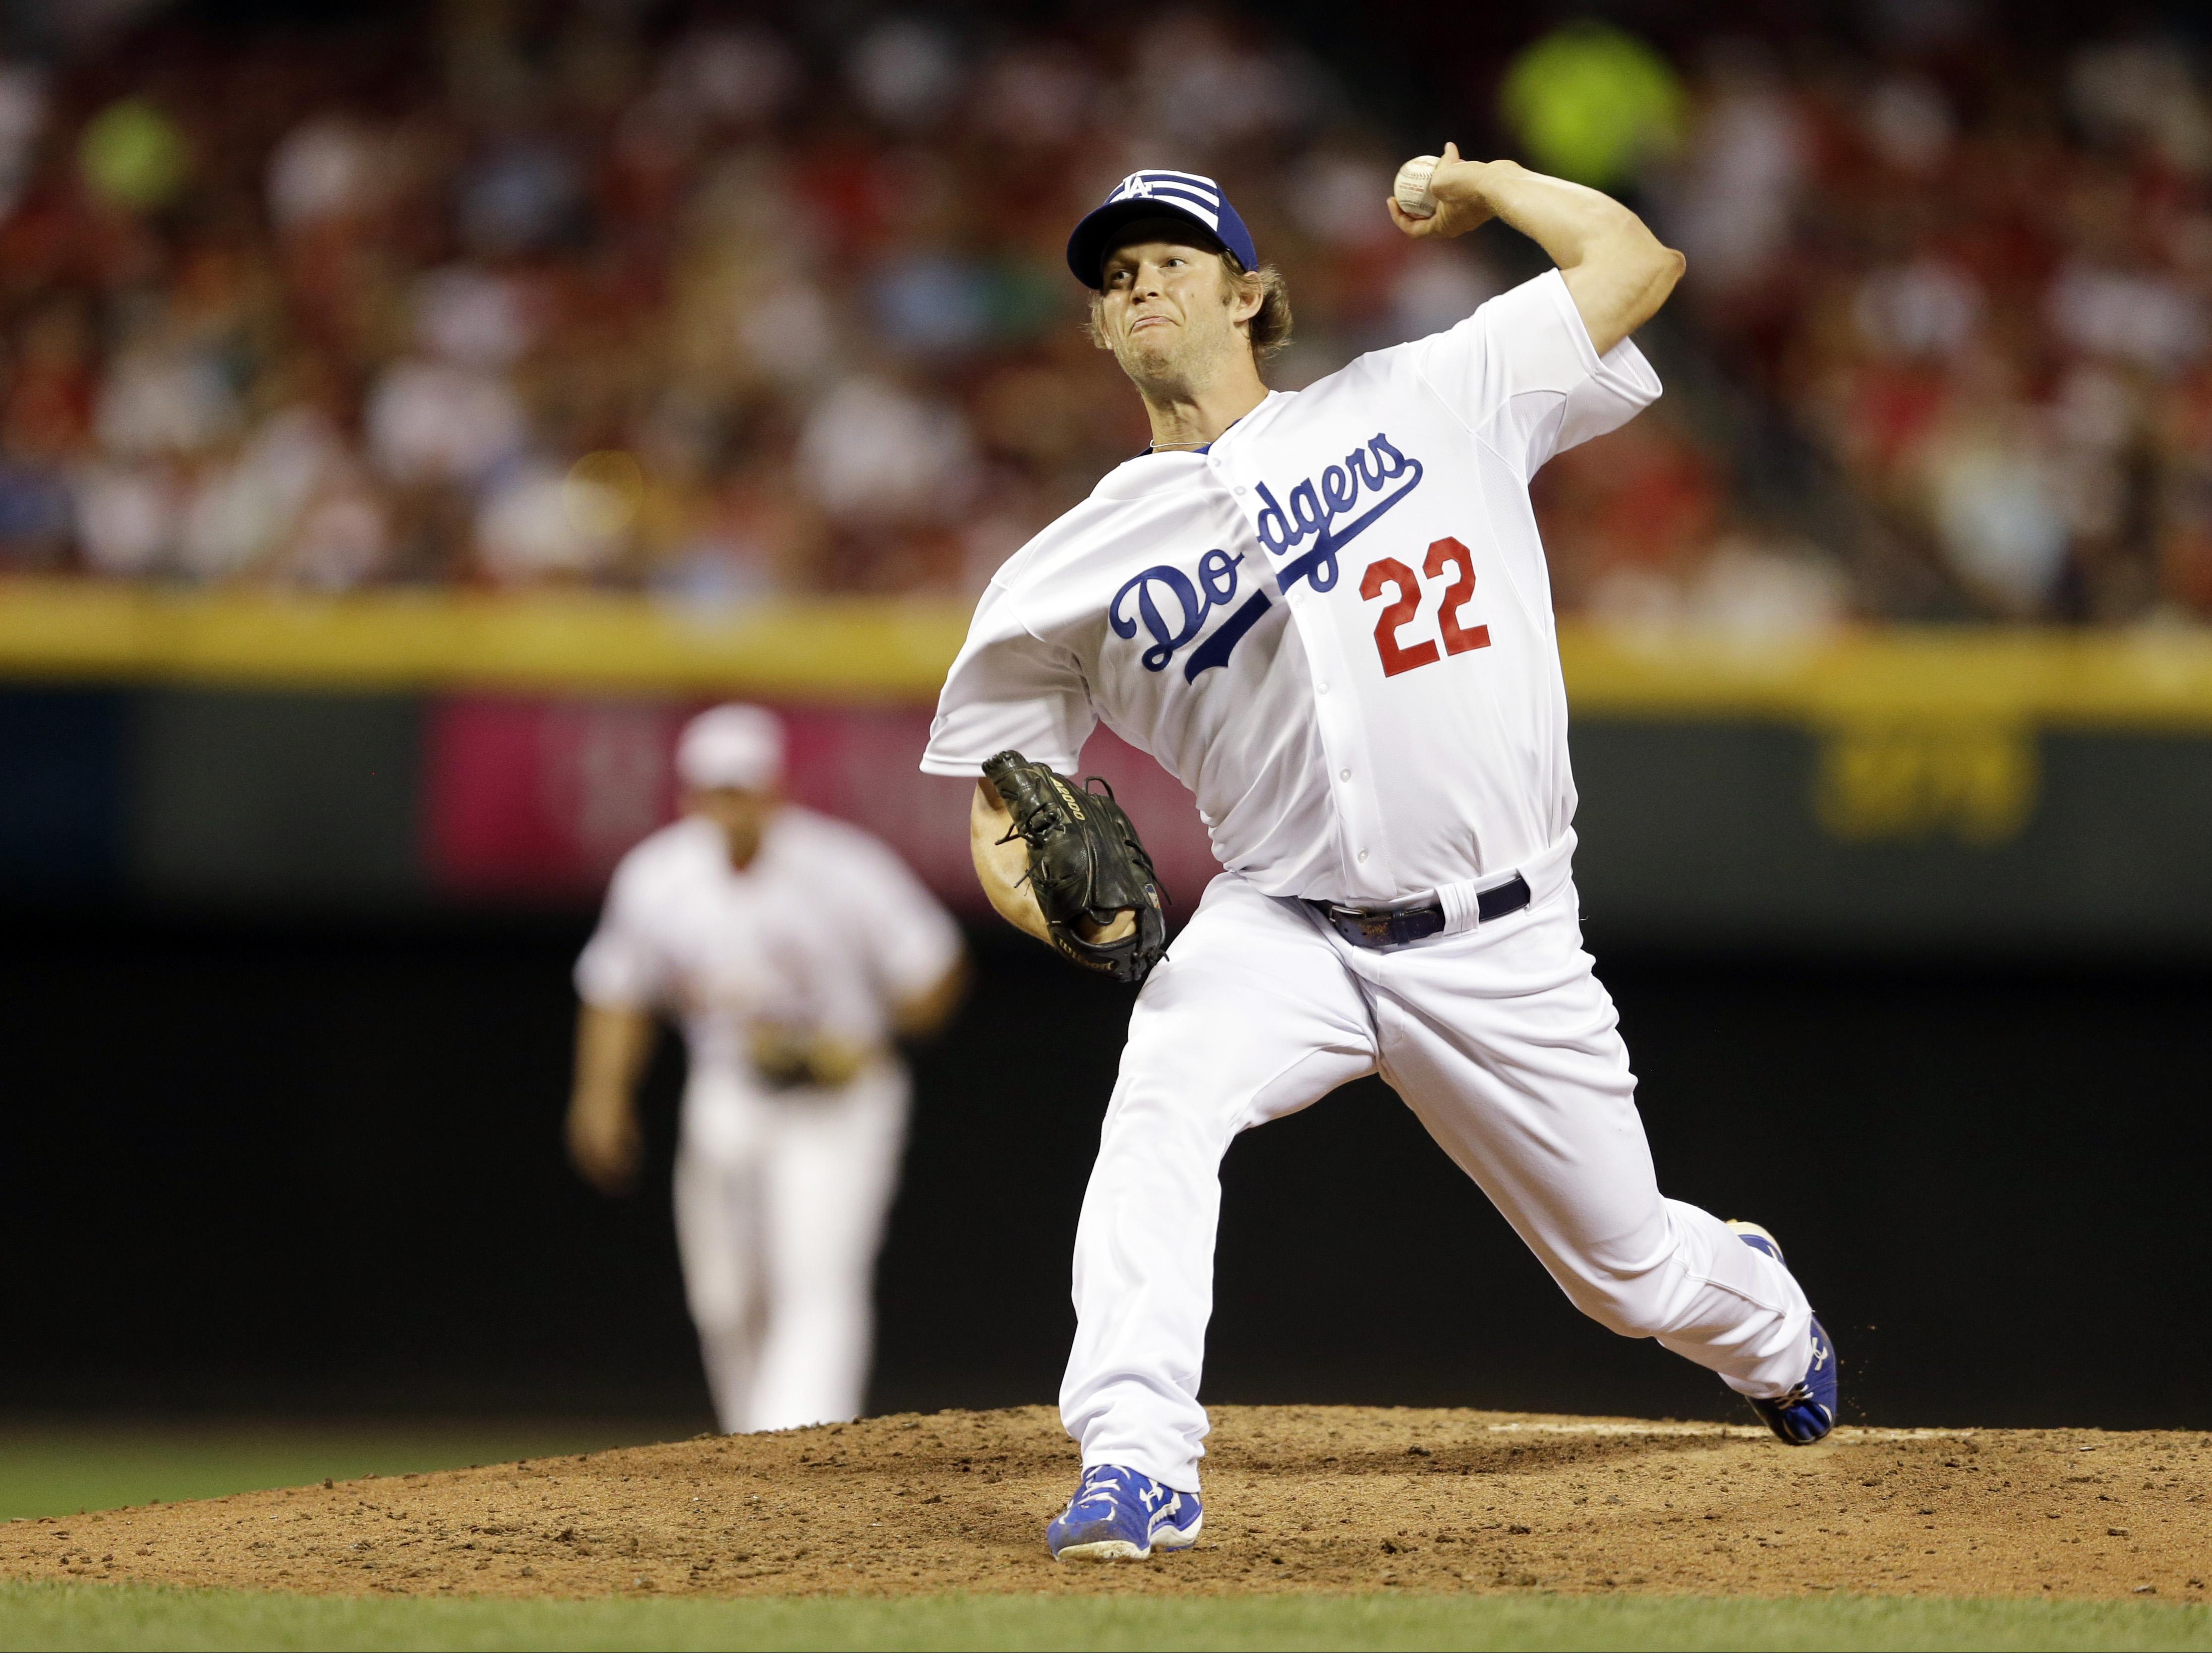 National League's Clayton Kershaw, of the Los Angeles Dodgers, throws during the fifth  inning of the MLB All-Star baseball game, Tuesday, July 14, 2015, in Cincinnati. (AP Photo/Jeff Roberson)